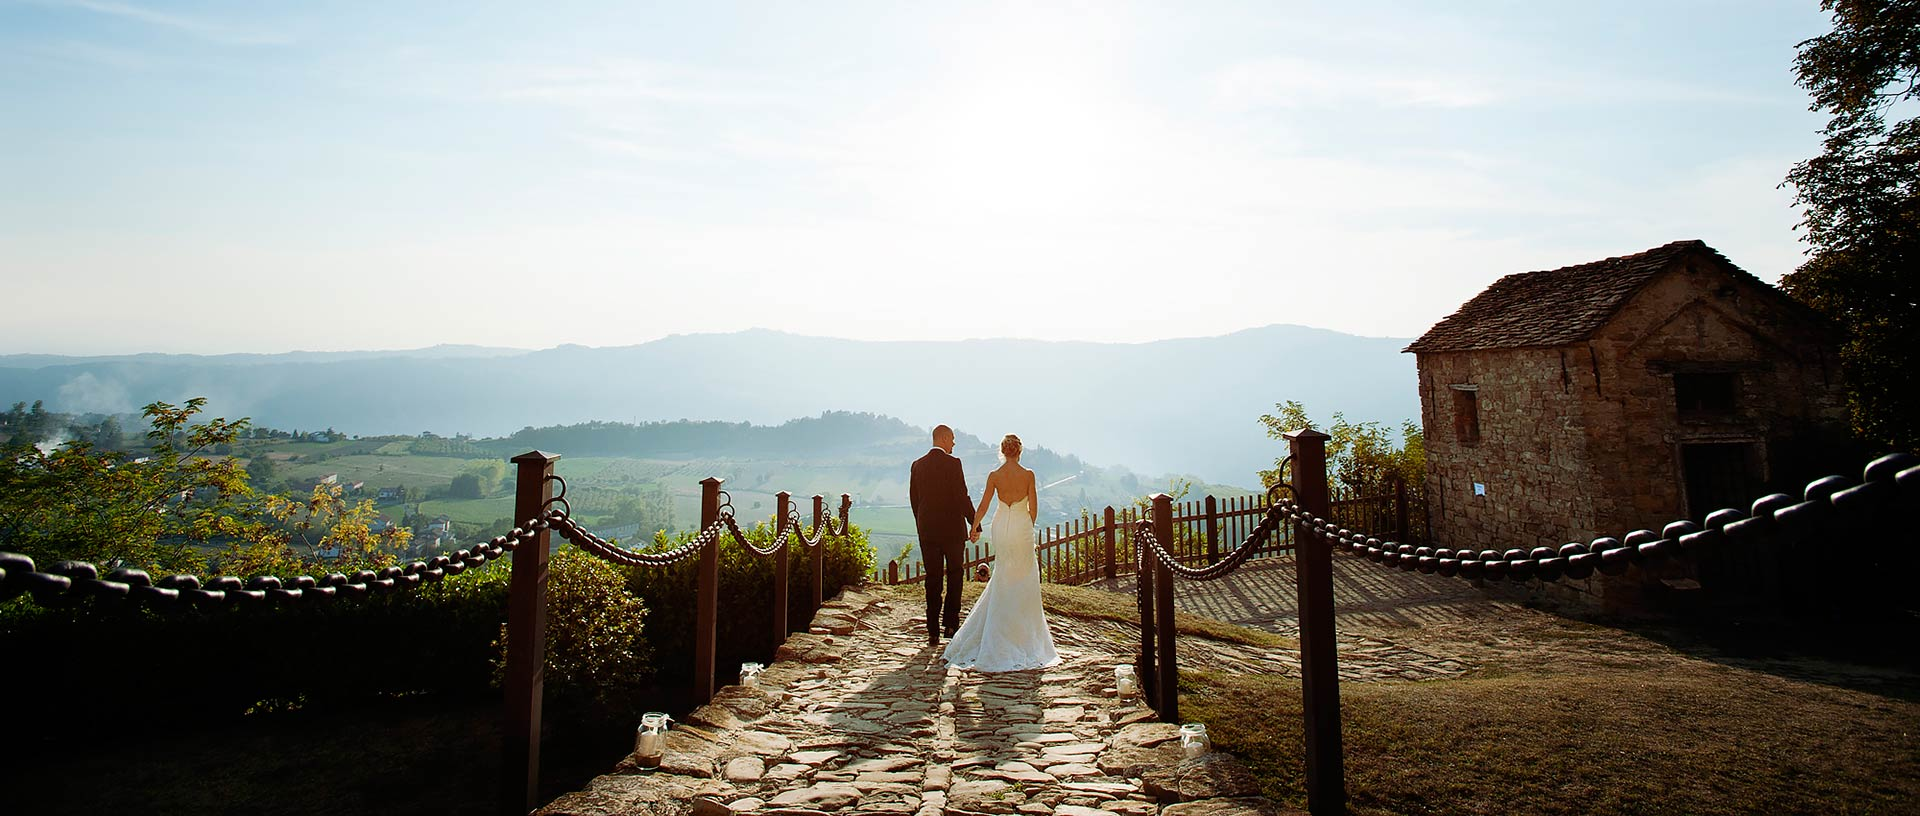 Eloping in Italian Countryside